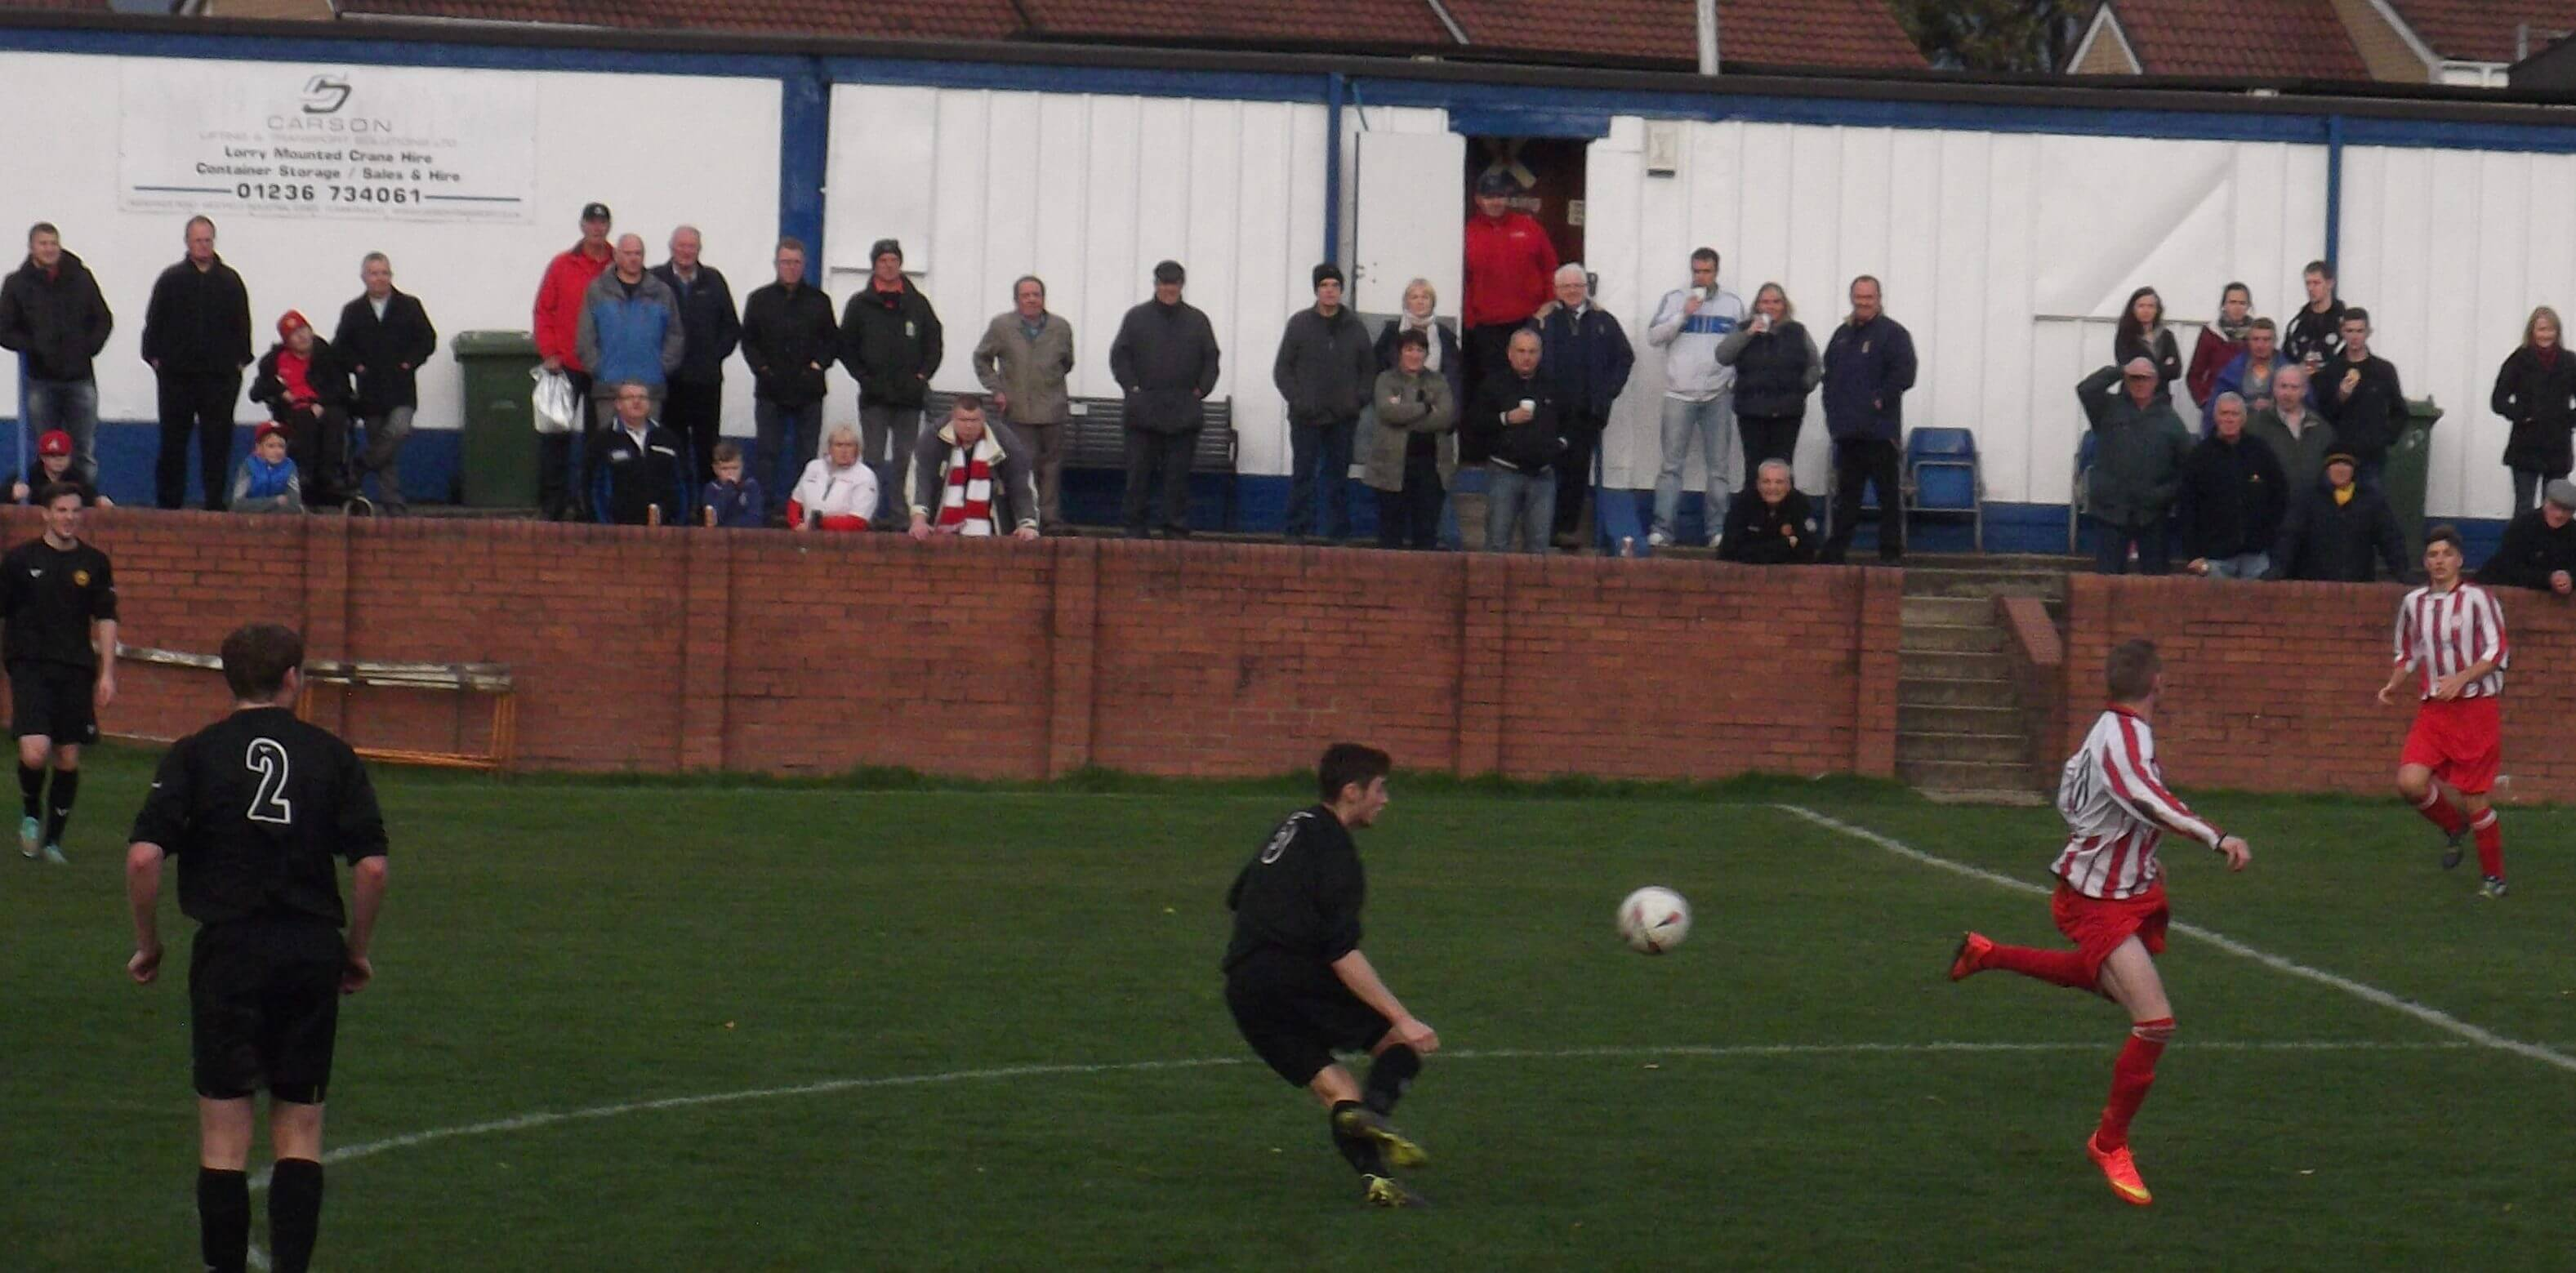 Bellshill v Larkhall Thistle 1st November 2014 - 5